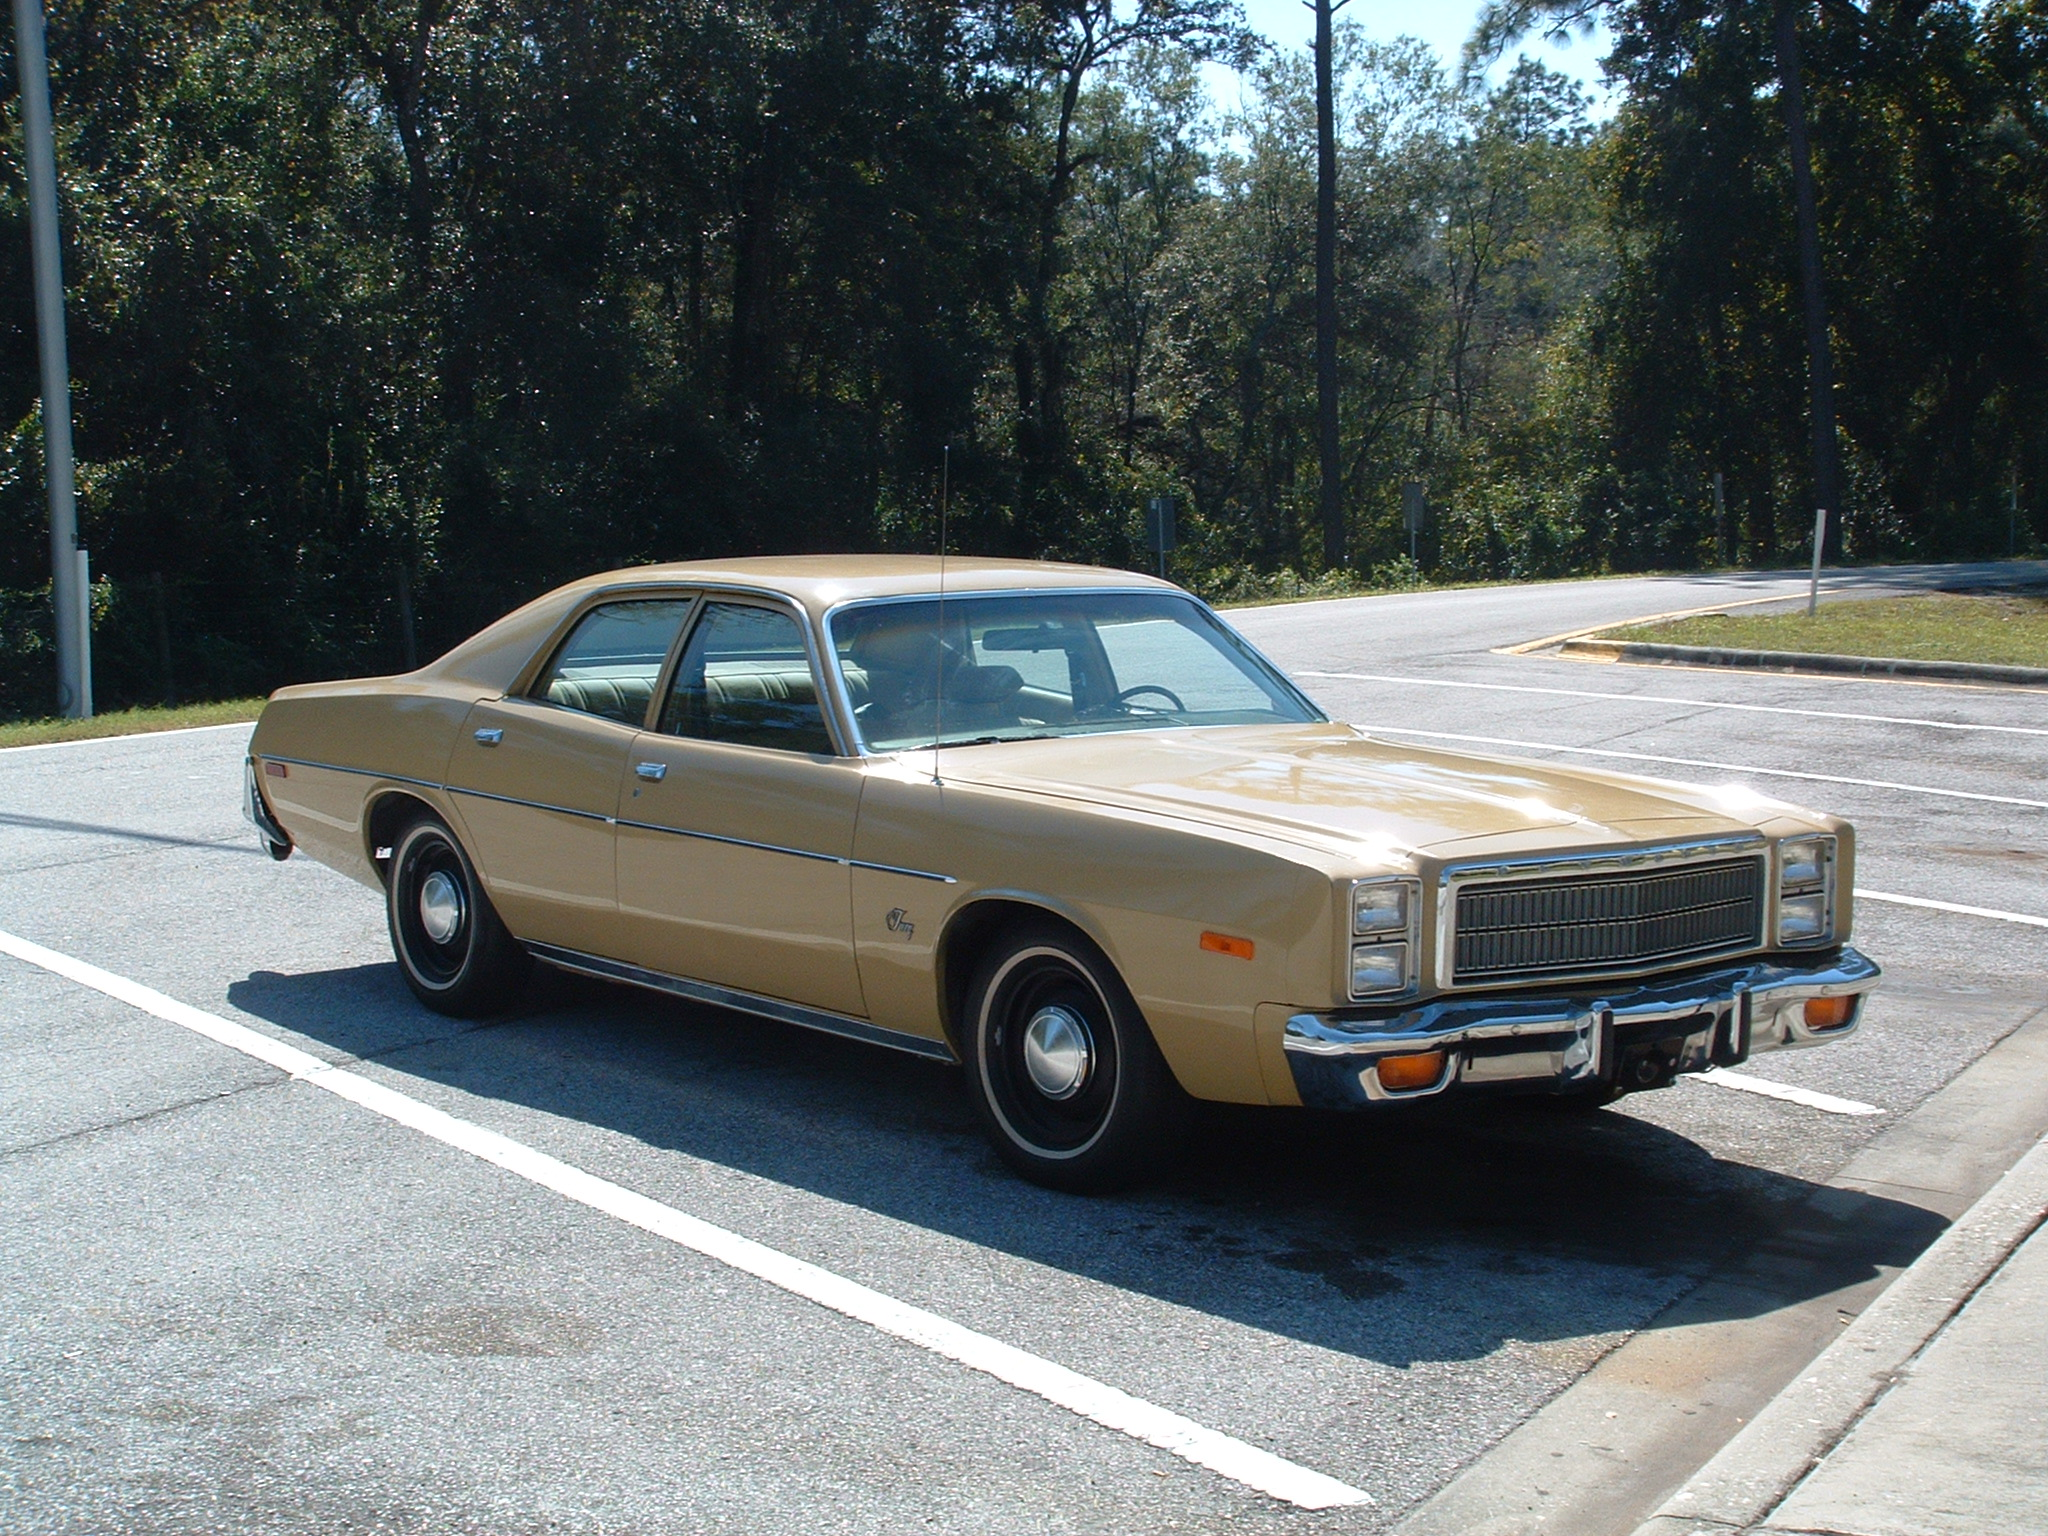 1978_Plymouth_Fury.JPG